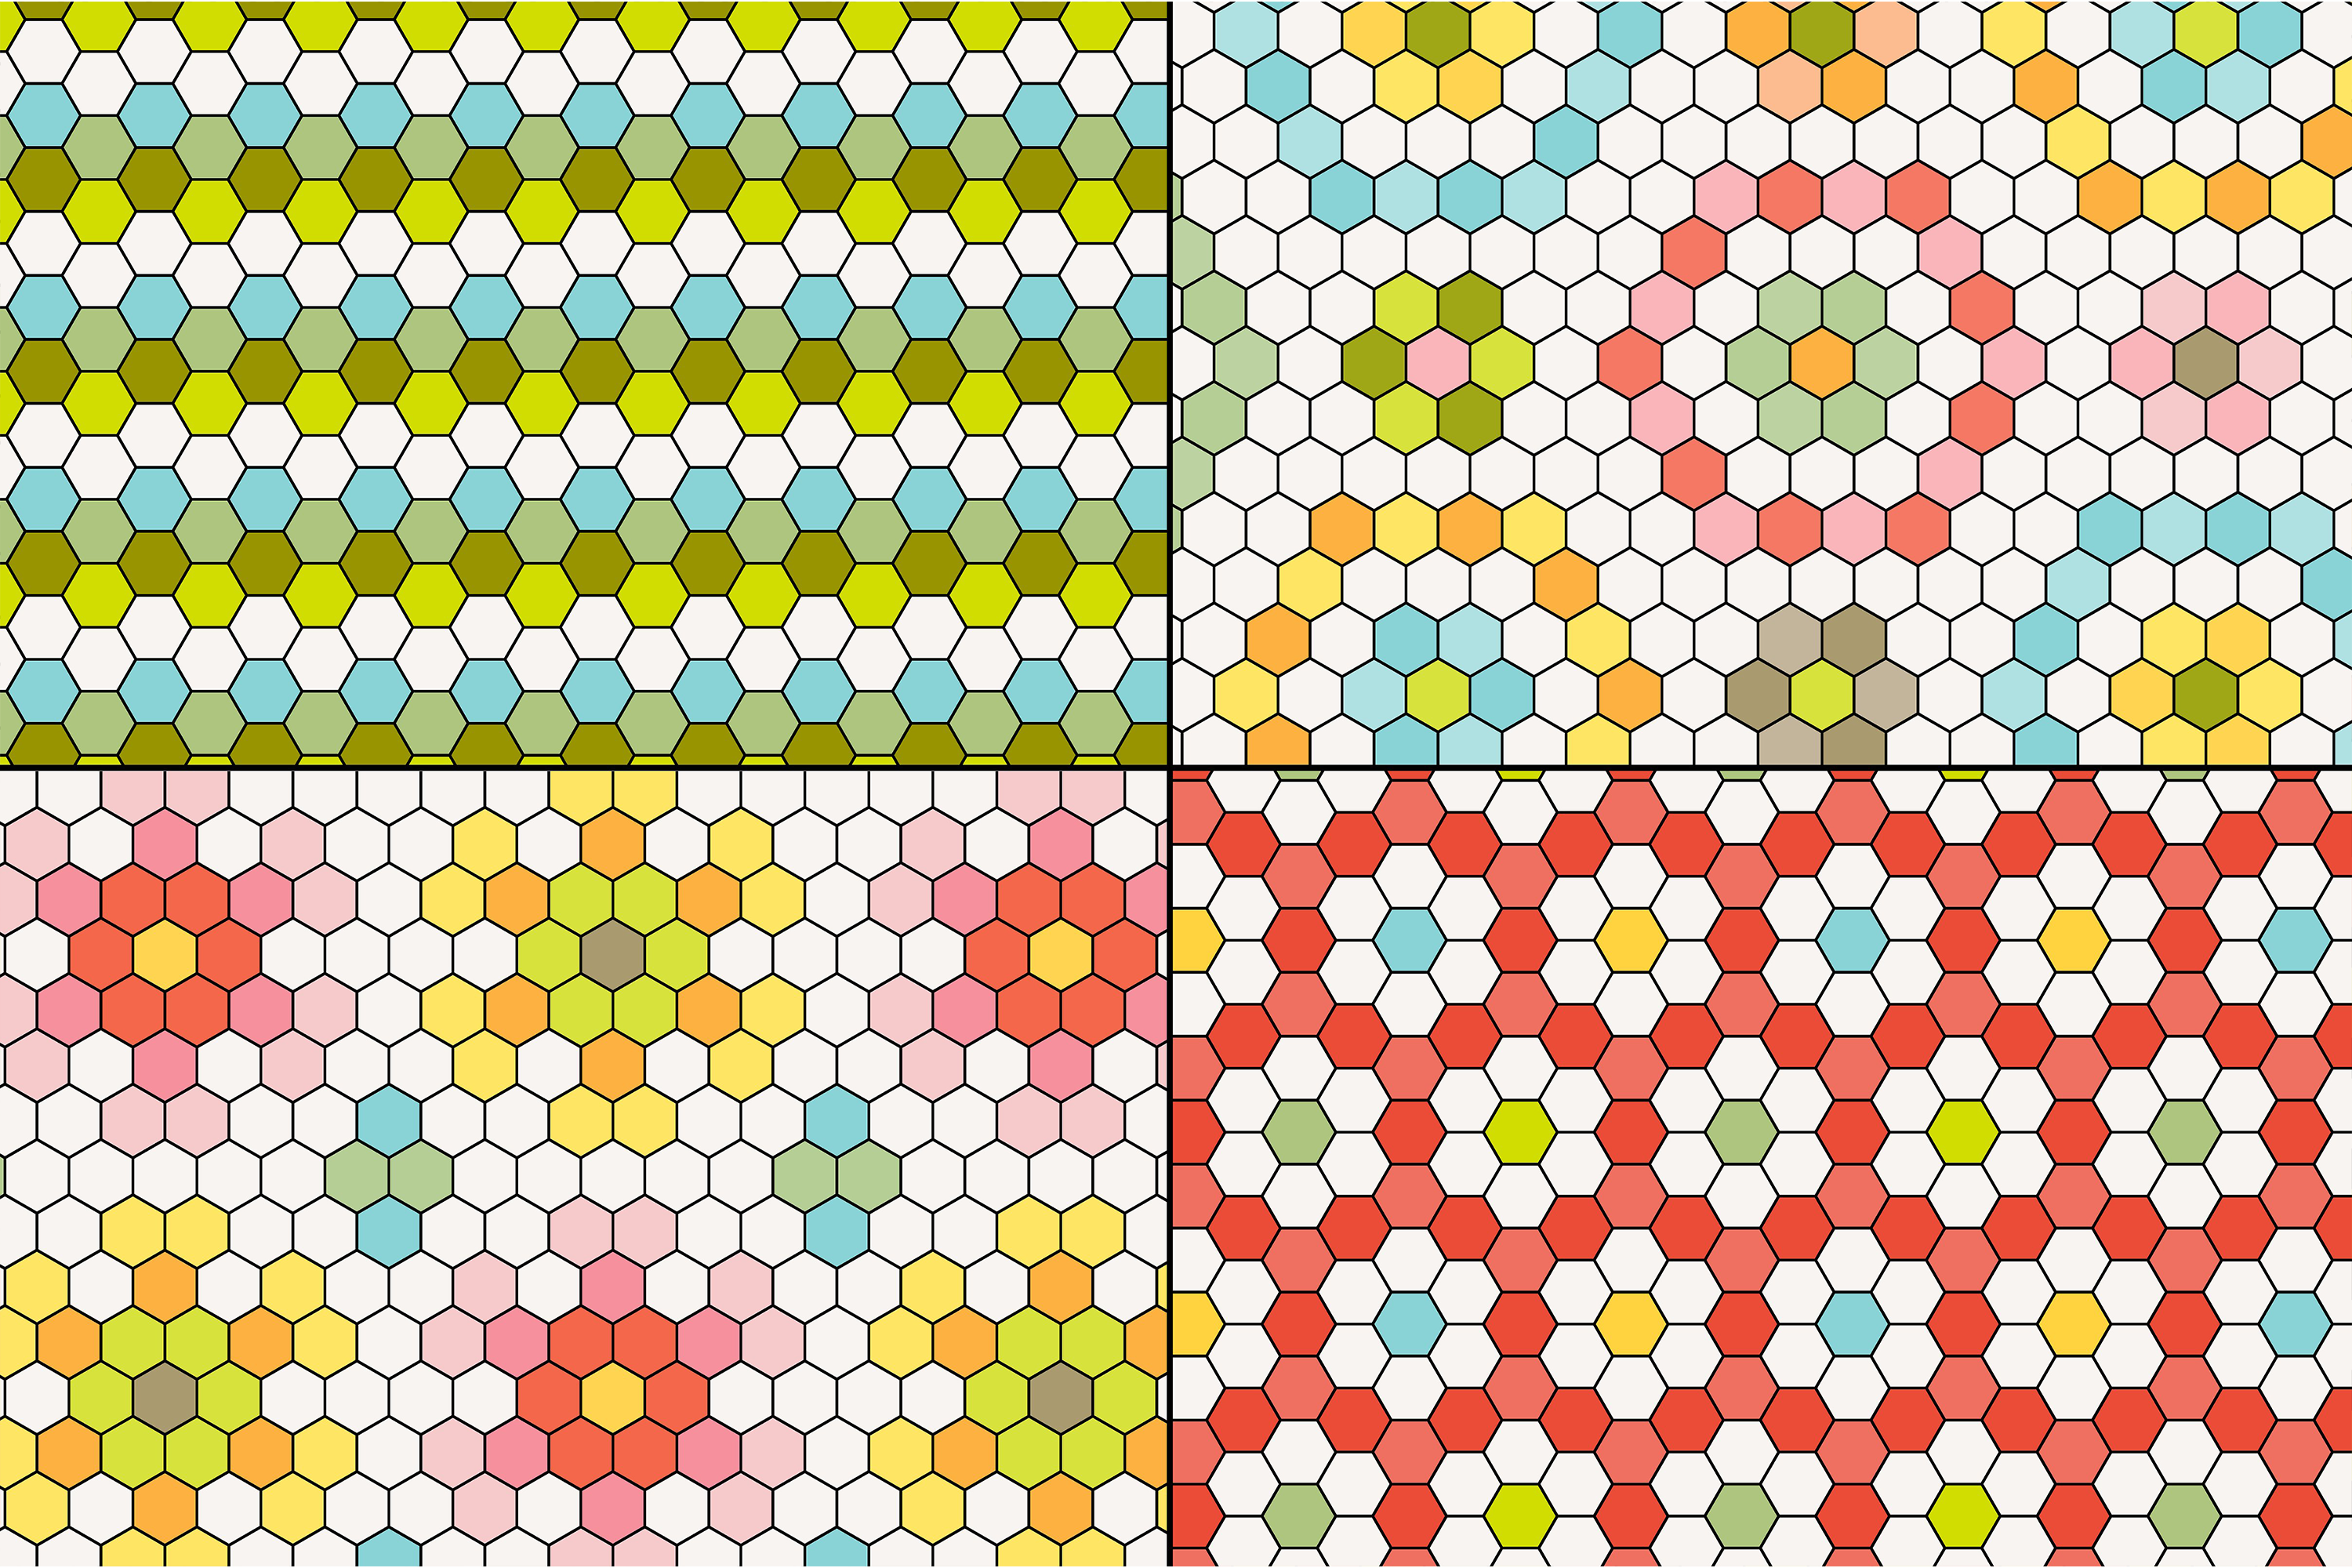 Hexagon Tile Patterns example image 3